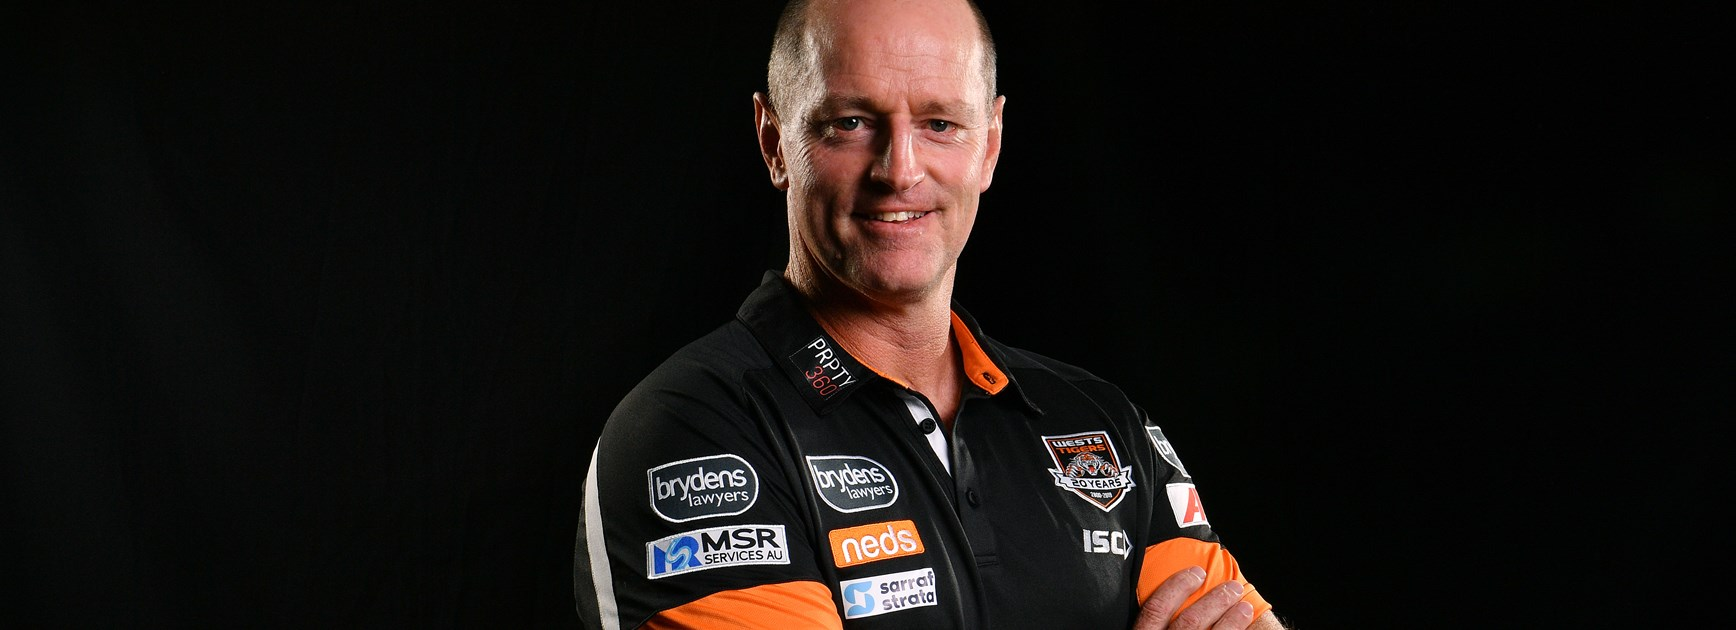 Wests Tigers coach Michael Maguire